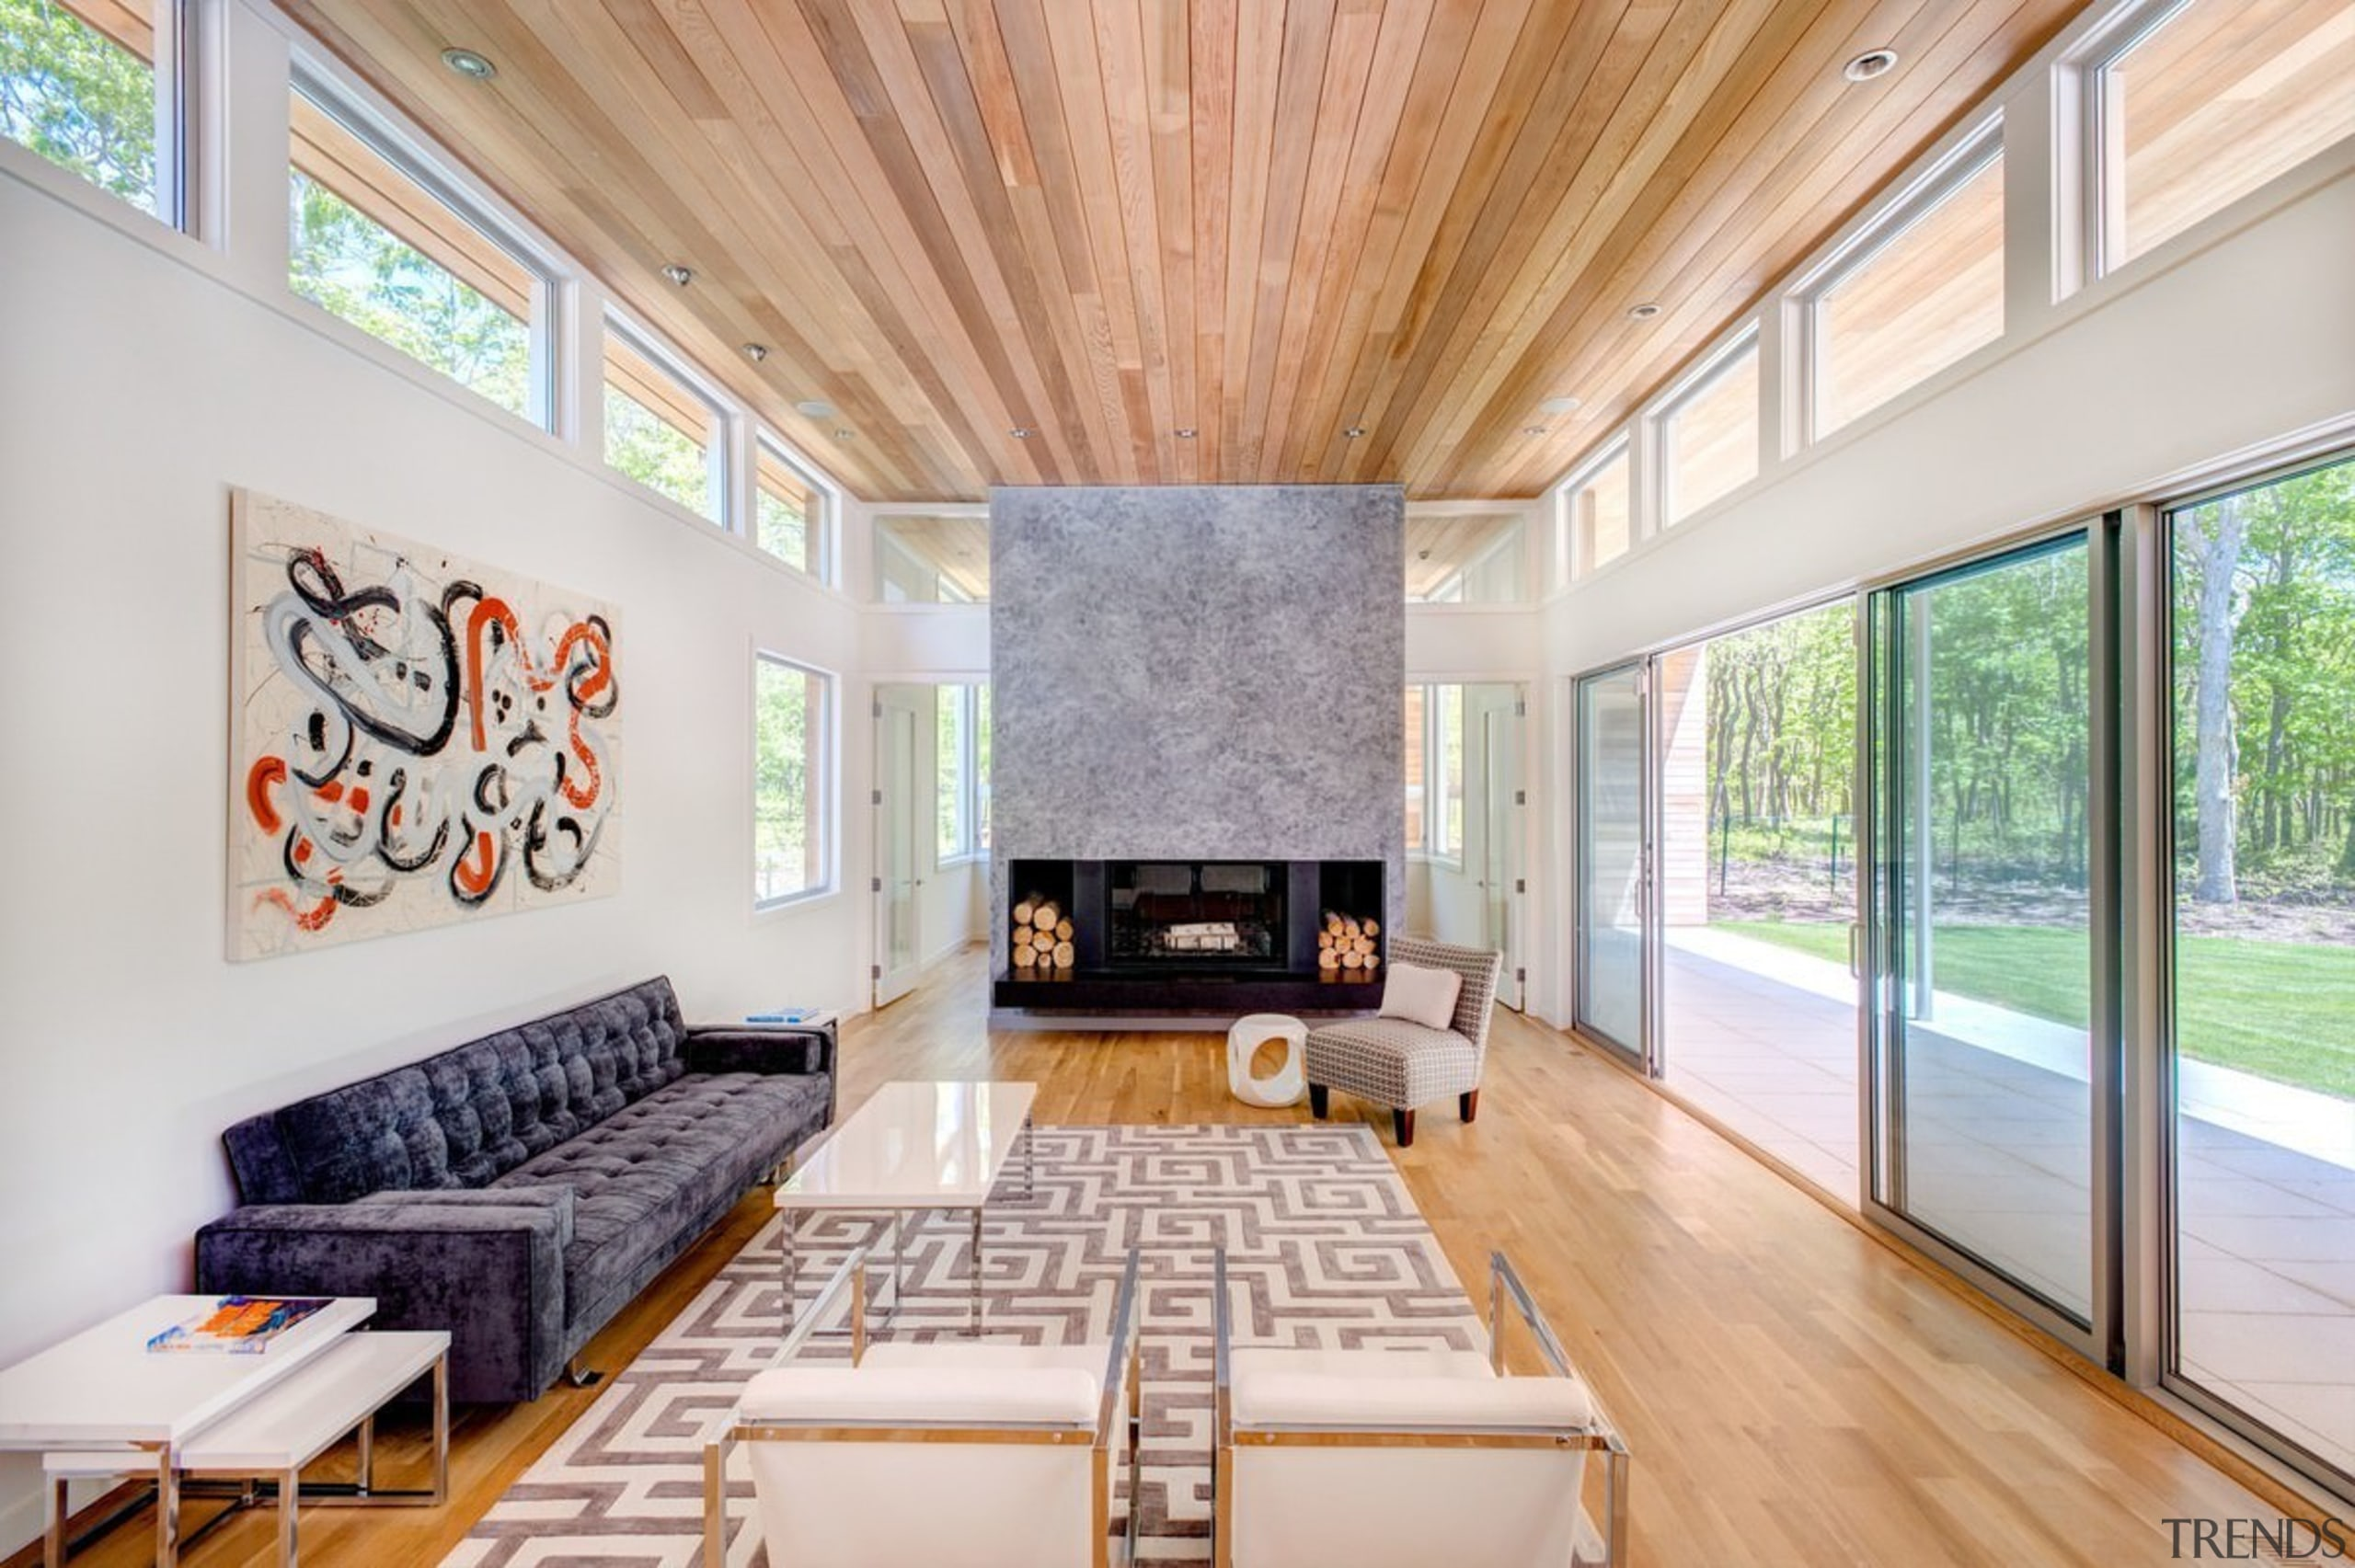 Clerestory windows sit below the wood ceiling, flooding architecture, ceiling, estate, house, interior design, living room, real estate, room, window, gray